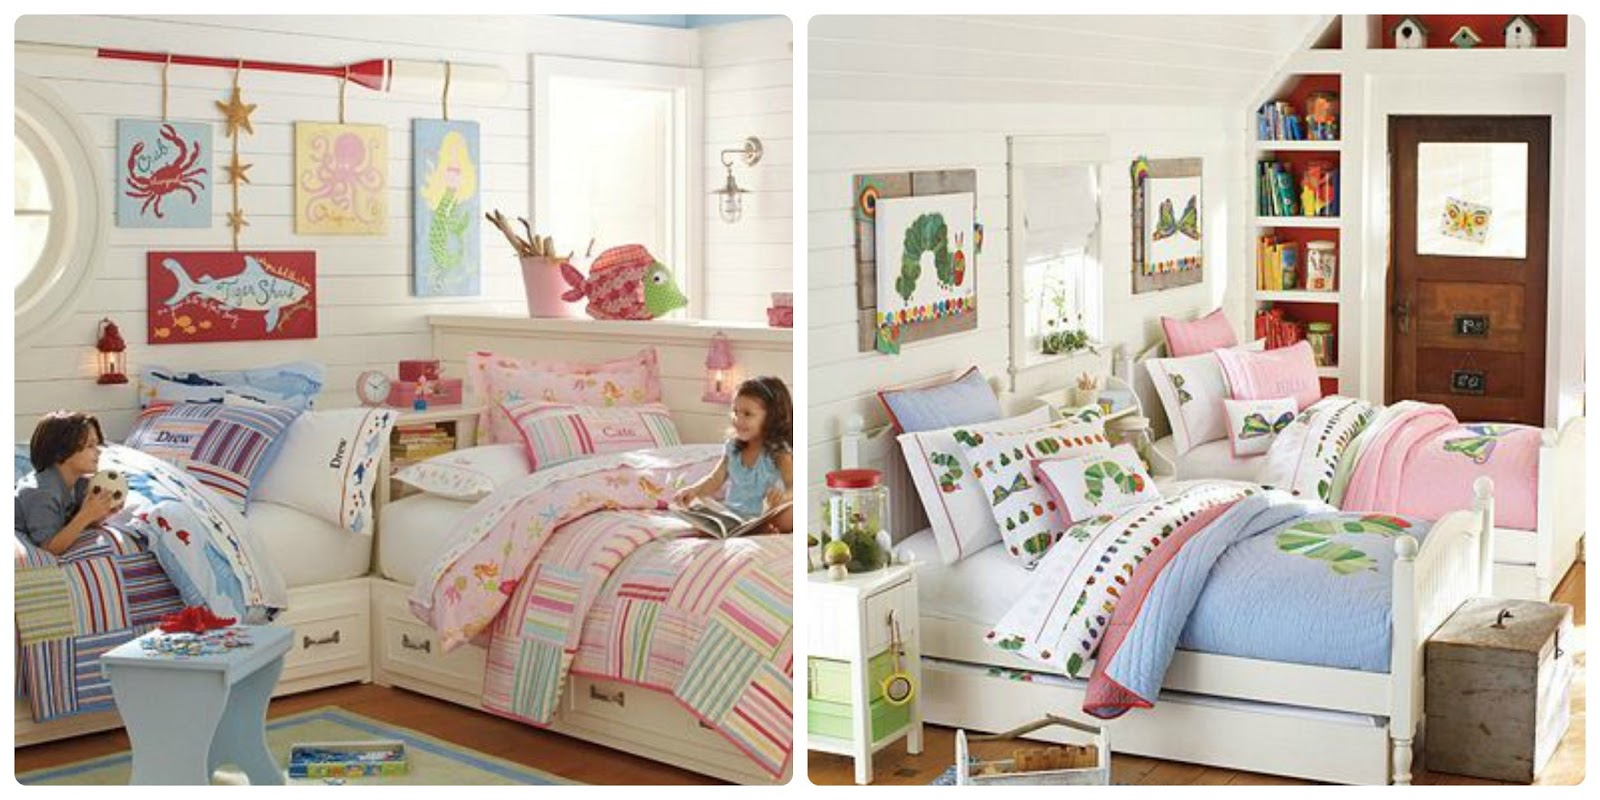 Girl And Boy Room Ideas Pepper And Buttons Best Boy 43 Girl Shared Room Ideas